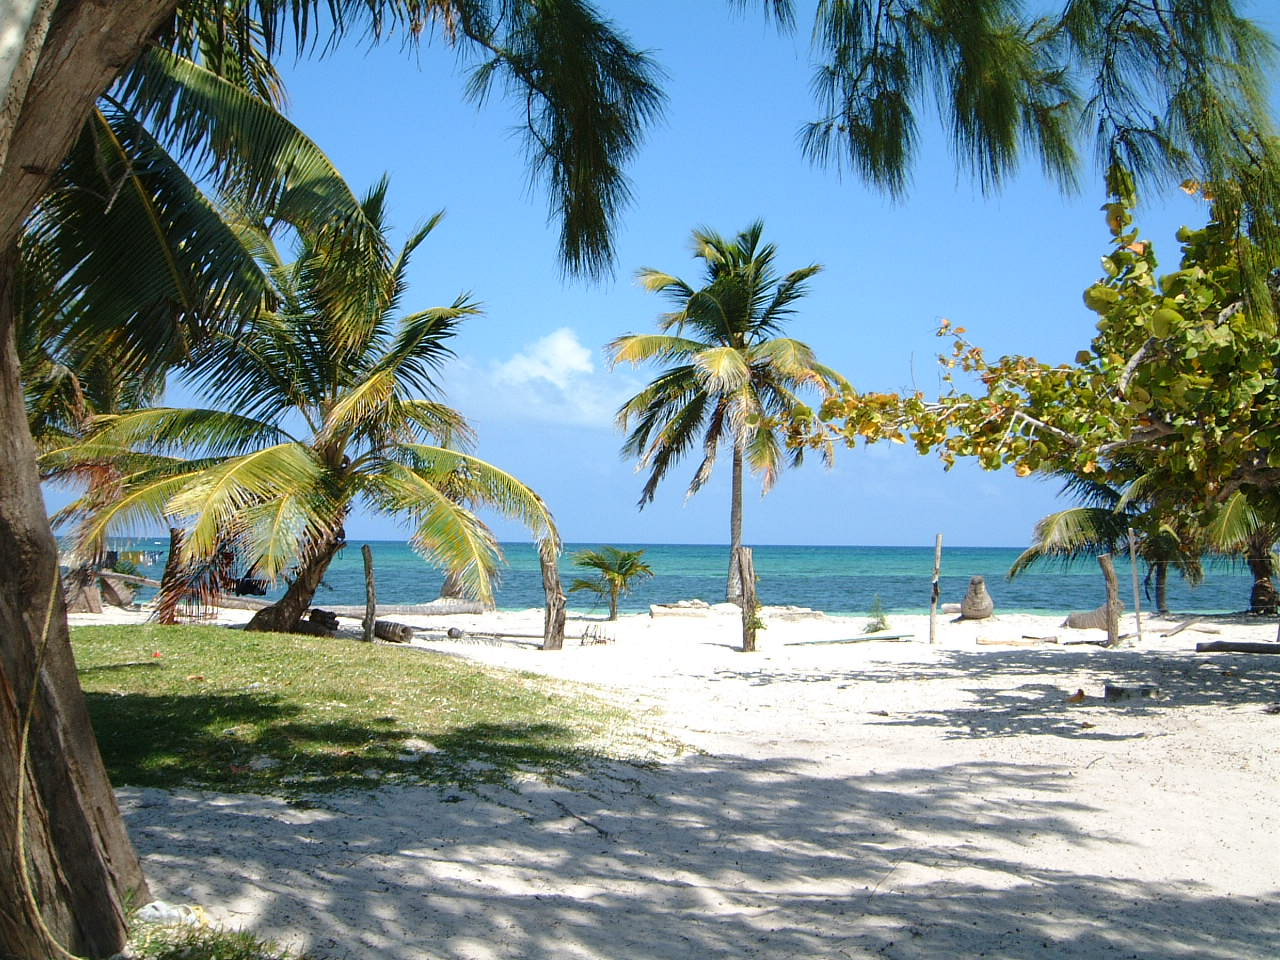 Mahahual Quintana Roo (Photo: Playas Mexico)